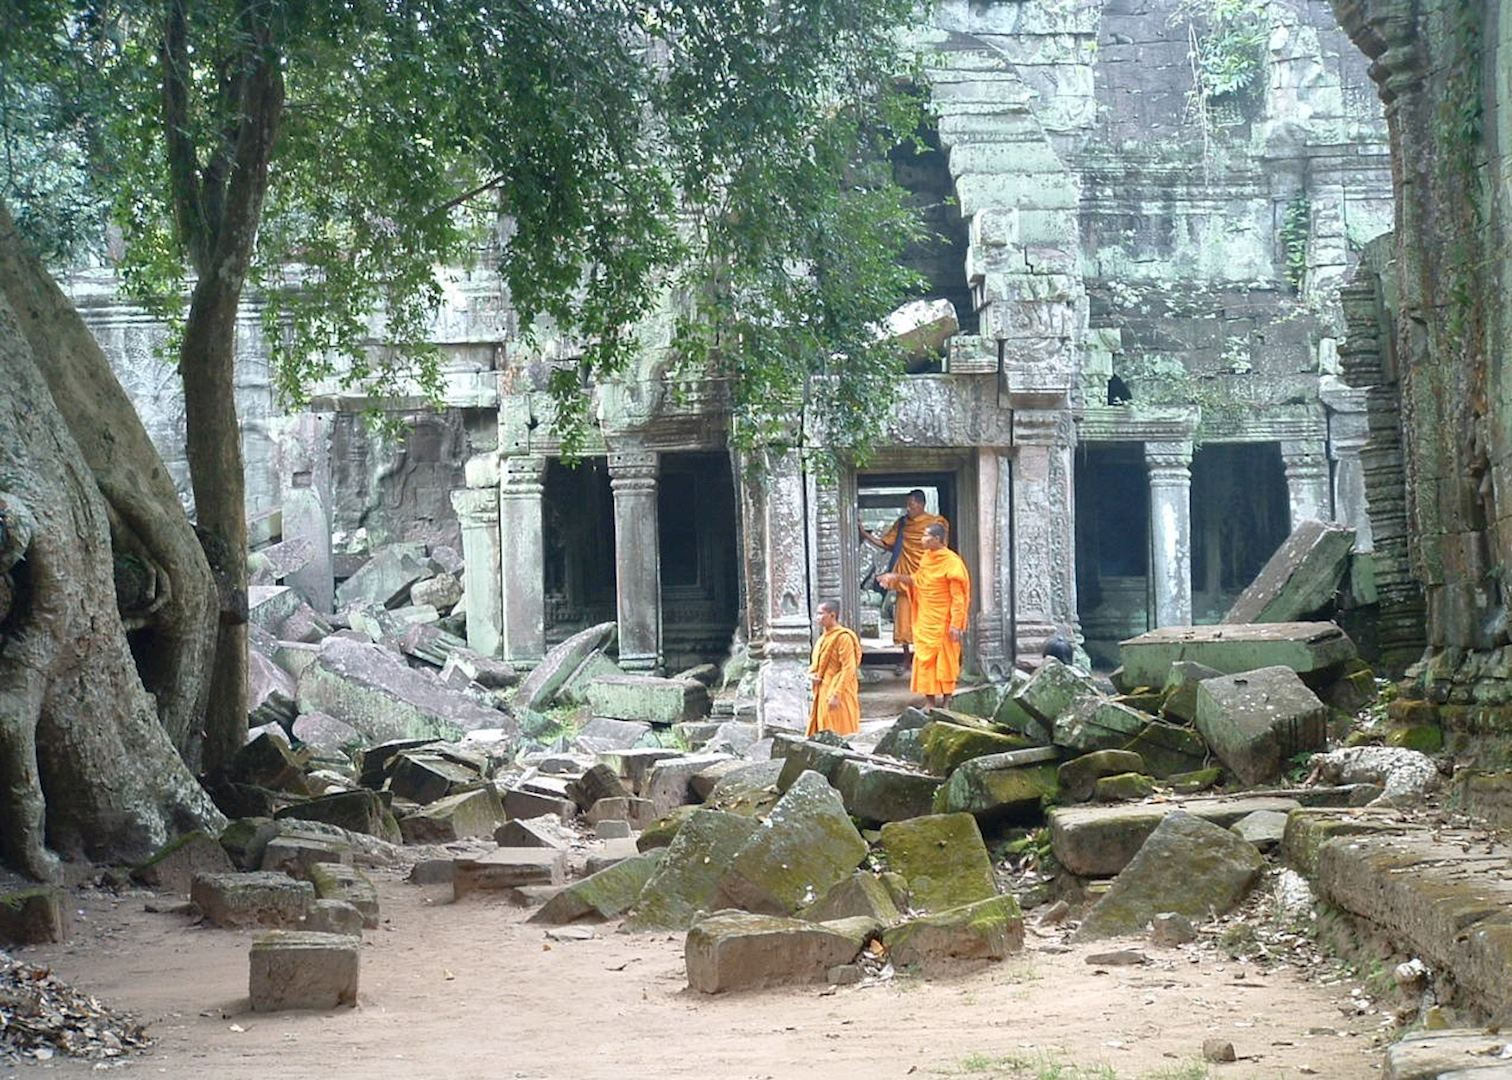 Family holidays in Cambodia | Travel guide | Audley Travel